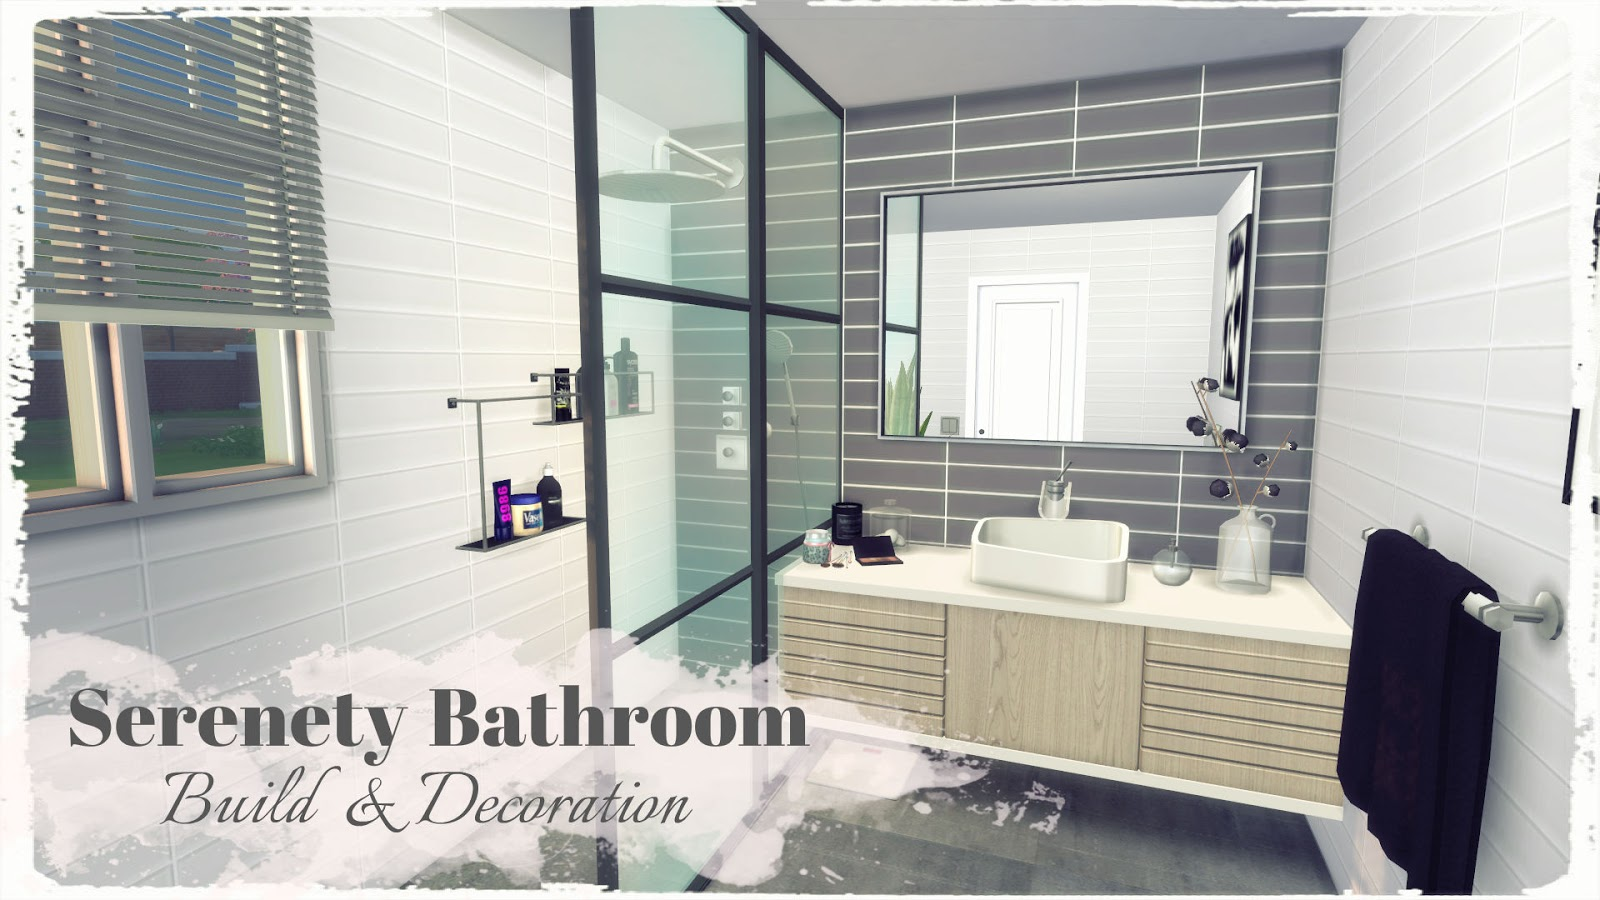 sims 4 serenety bathroom build decoration dinha